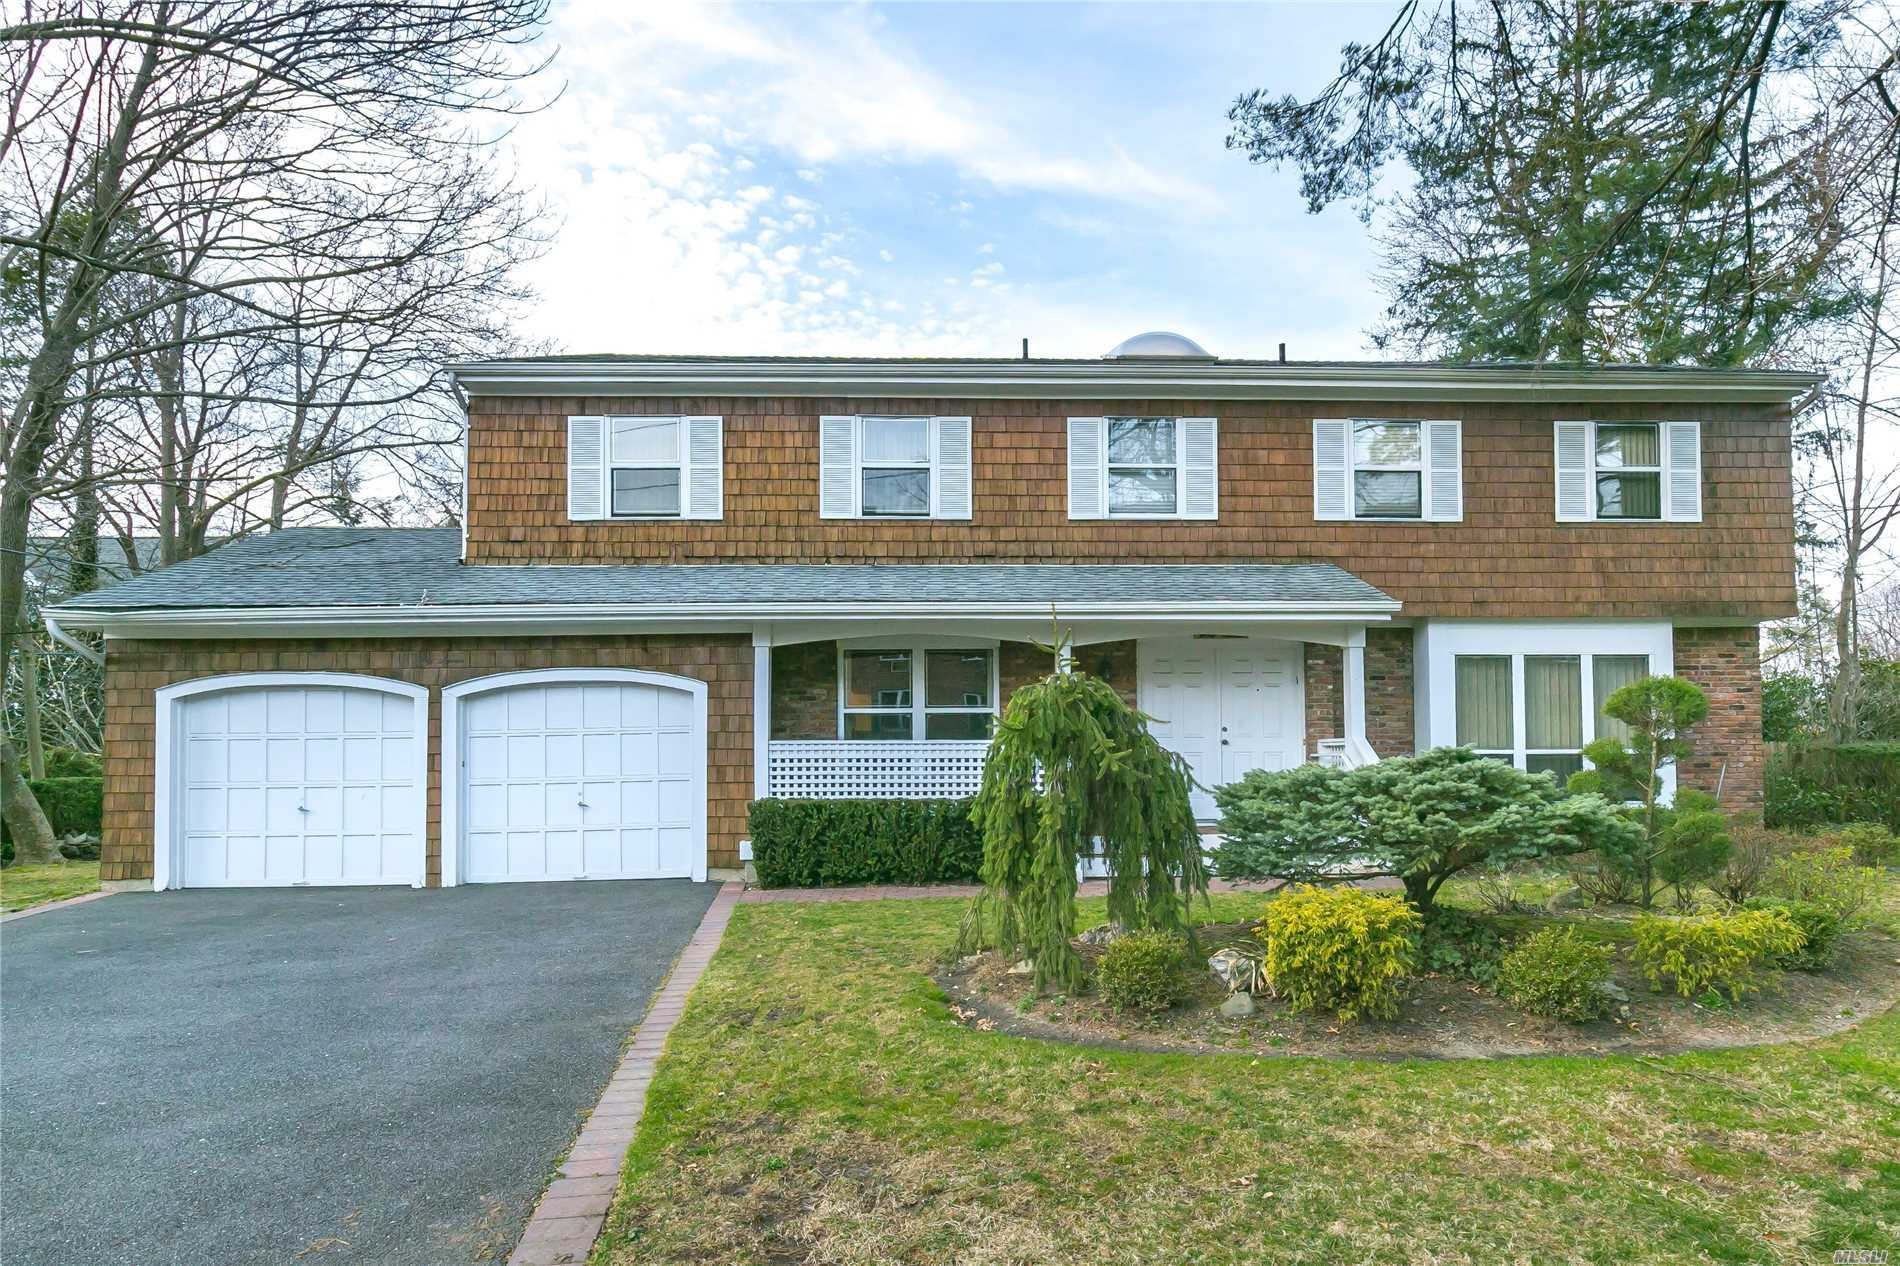 Wonderful South Facing Colonial in the Prestigious Village of Kensington. Spacious Rooms. 4 Bedrooms. 2.5 Baths. Cac. Gas Heating. Vaulted Ceilings. Skylights. 2 Car Garage. Private community with pool and Police. Best location - Minutes to town, train and shops. A must see!